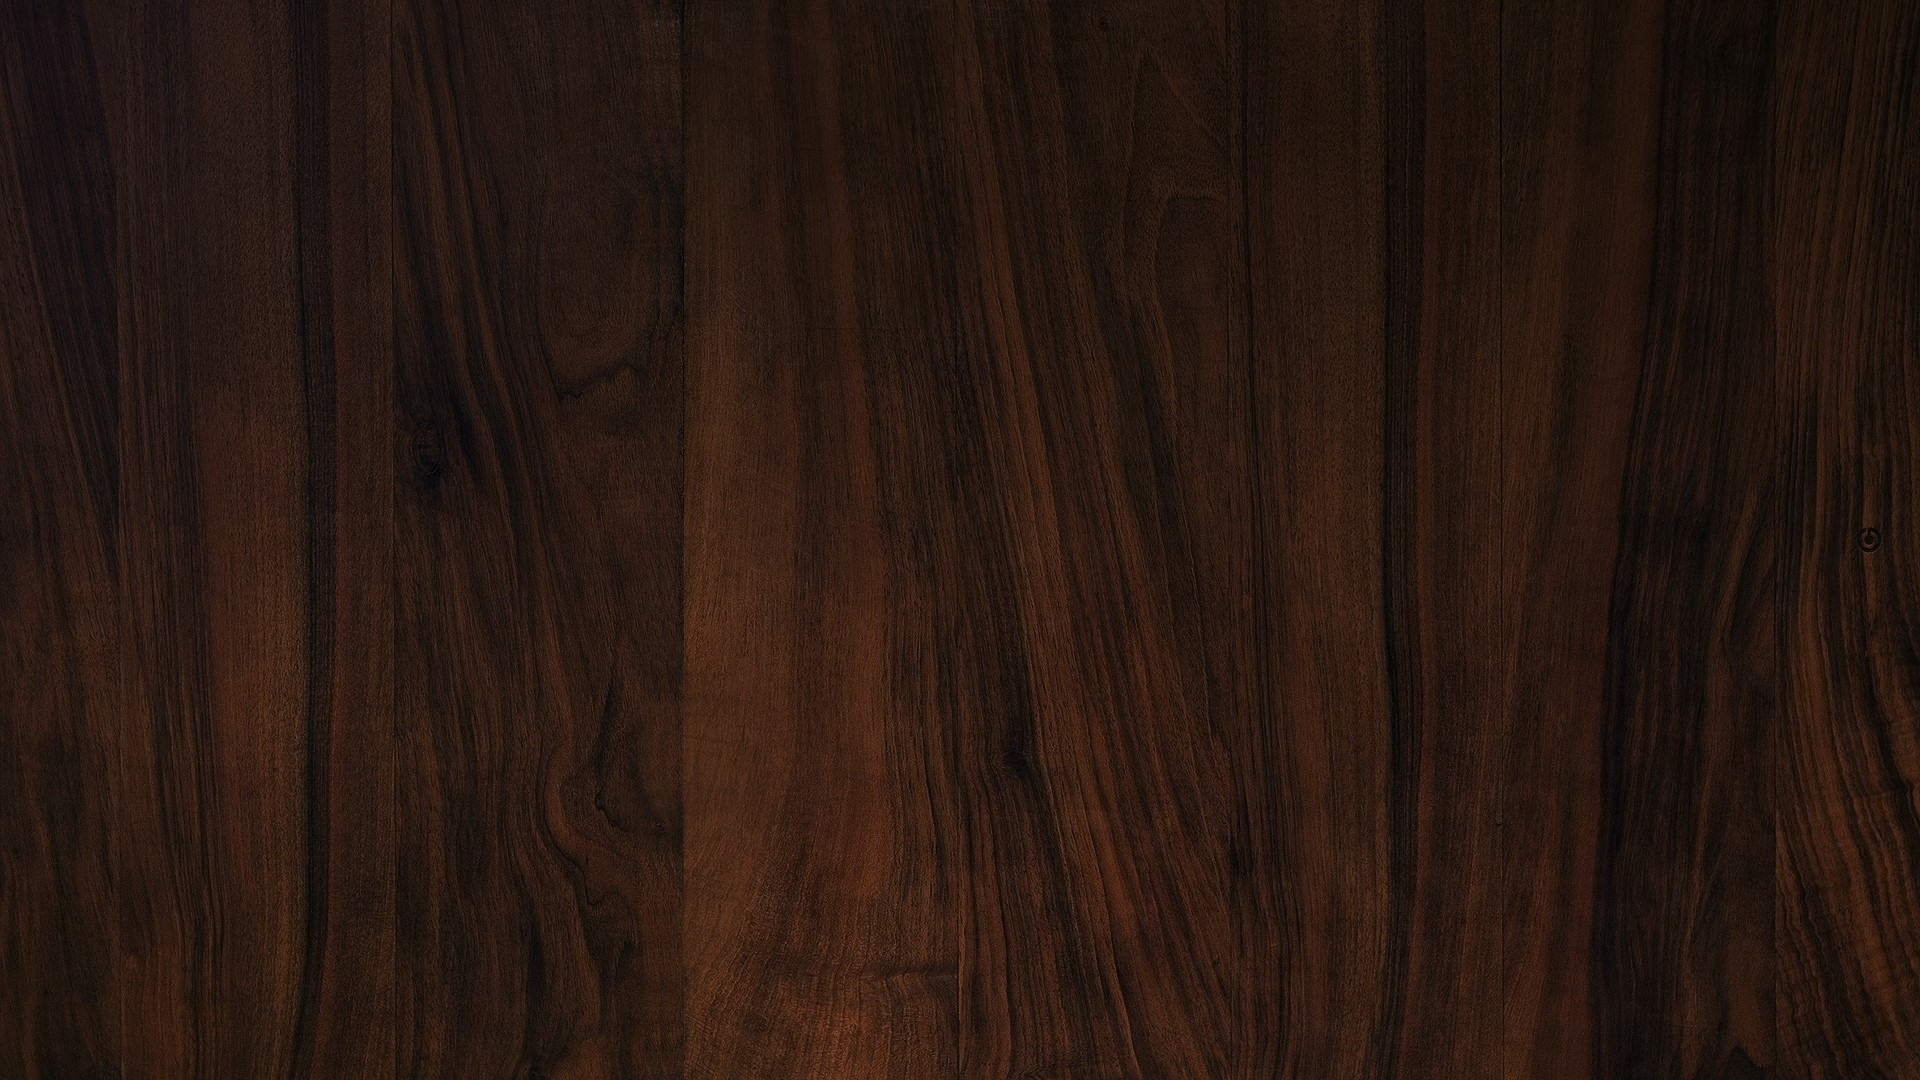 Res: 1920x1080, Wood Wallpapers High Resolution On Wallpaper 1080p HD